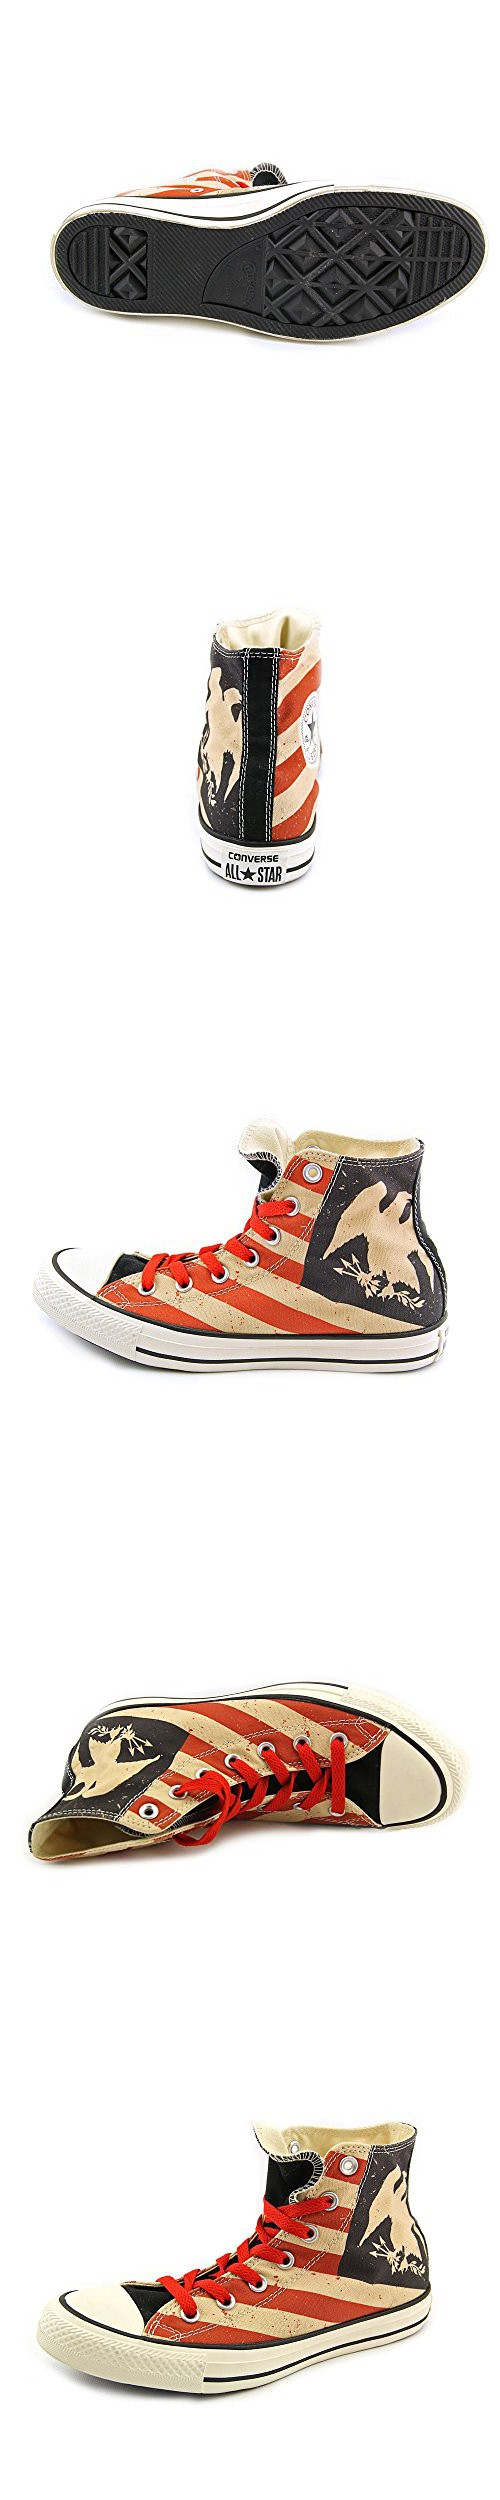 Converse Chuck Taylor All Star Hi Men's Sneakers Shoes Red Size 7